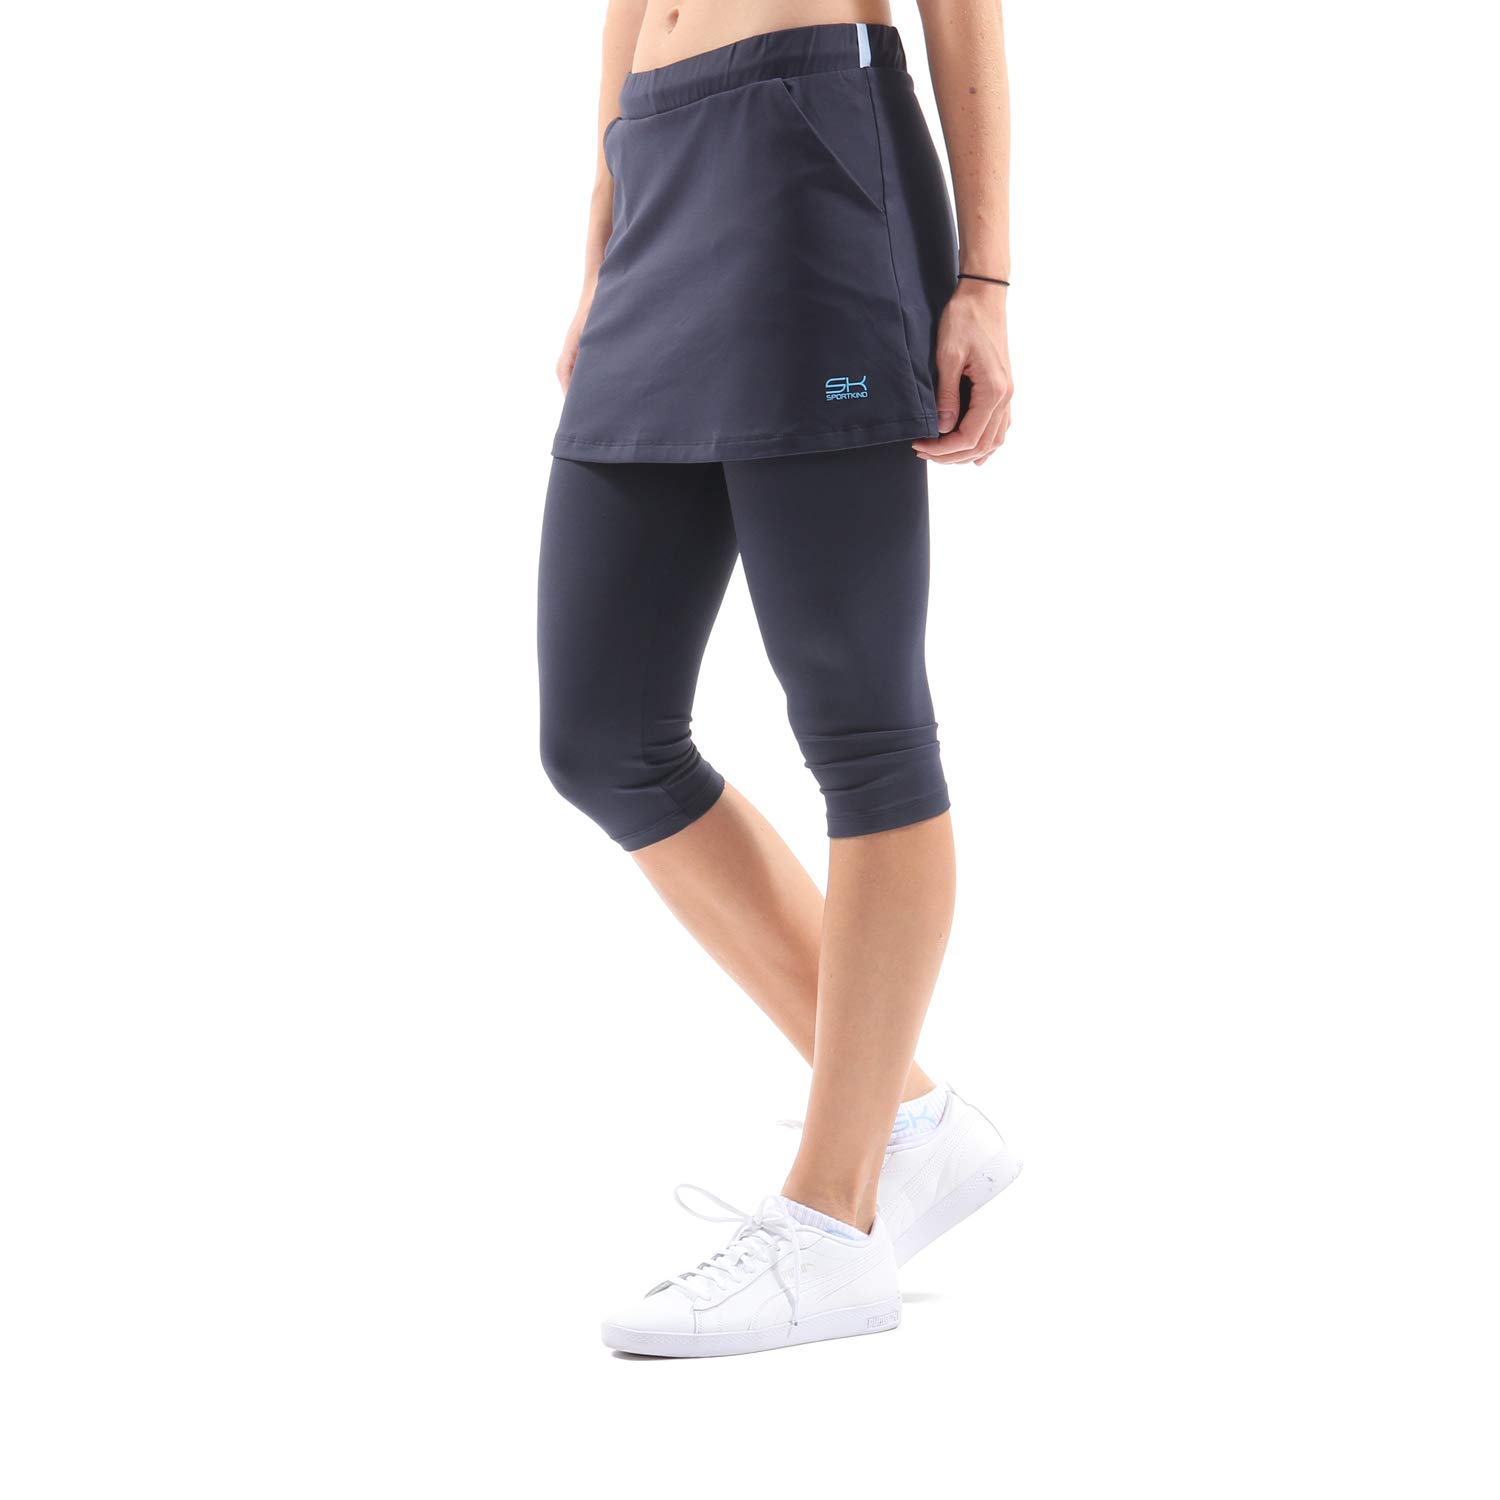 Sportkind Mädchen & Damen Tennis/Hockey/Running 2-in-1 Rock mit Leggings